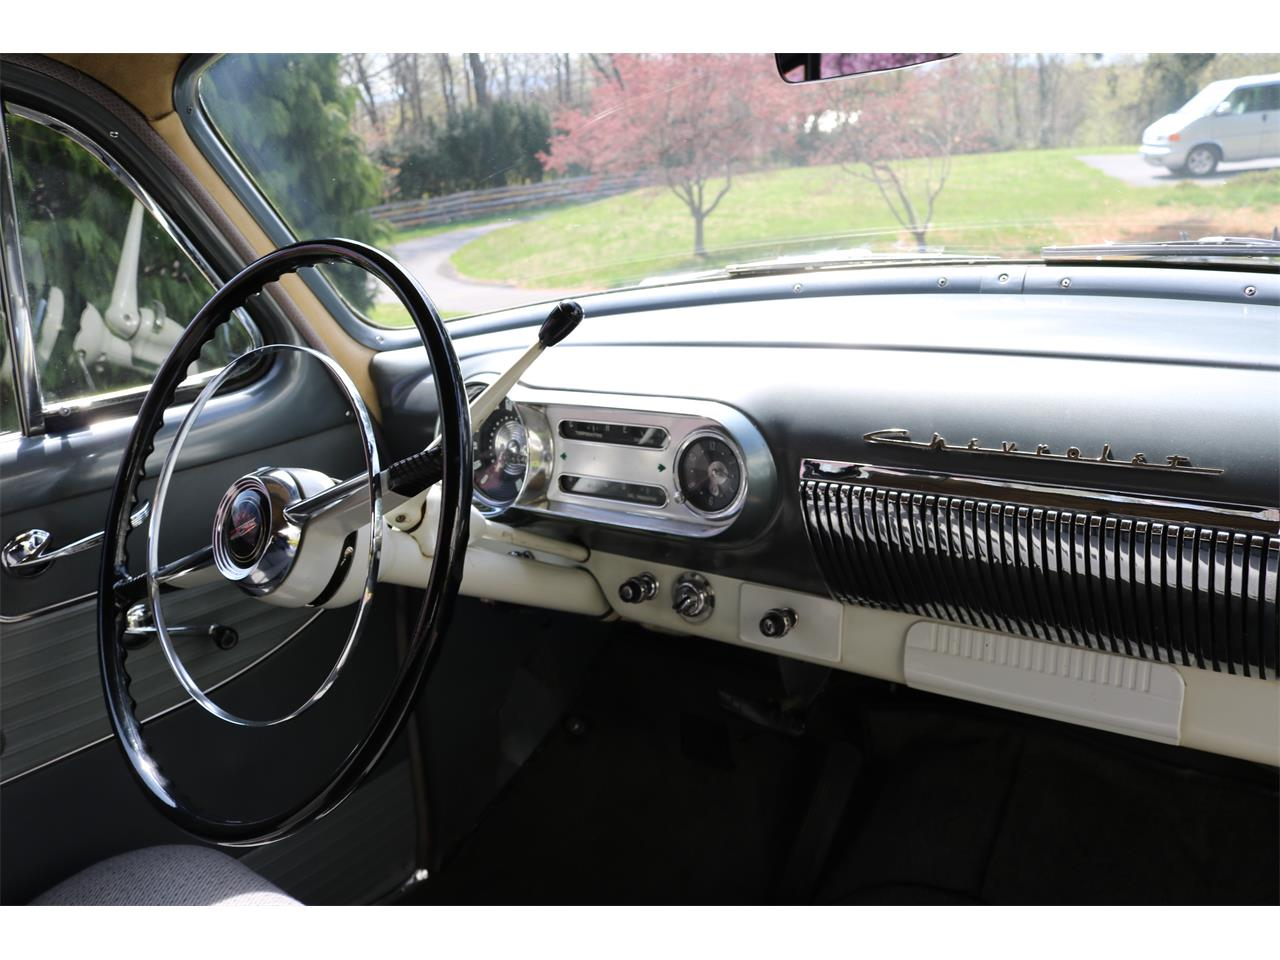 Large Picture of Classic 1954 Bel Air - $22,500.00 Offered by a Private Seller - Q5TA